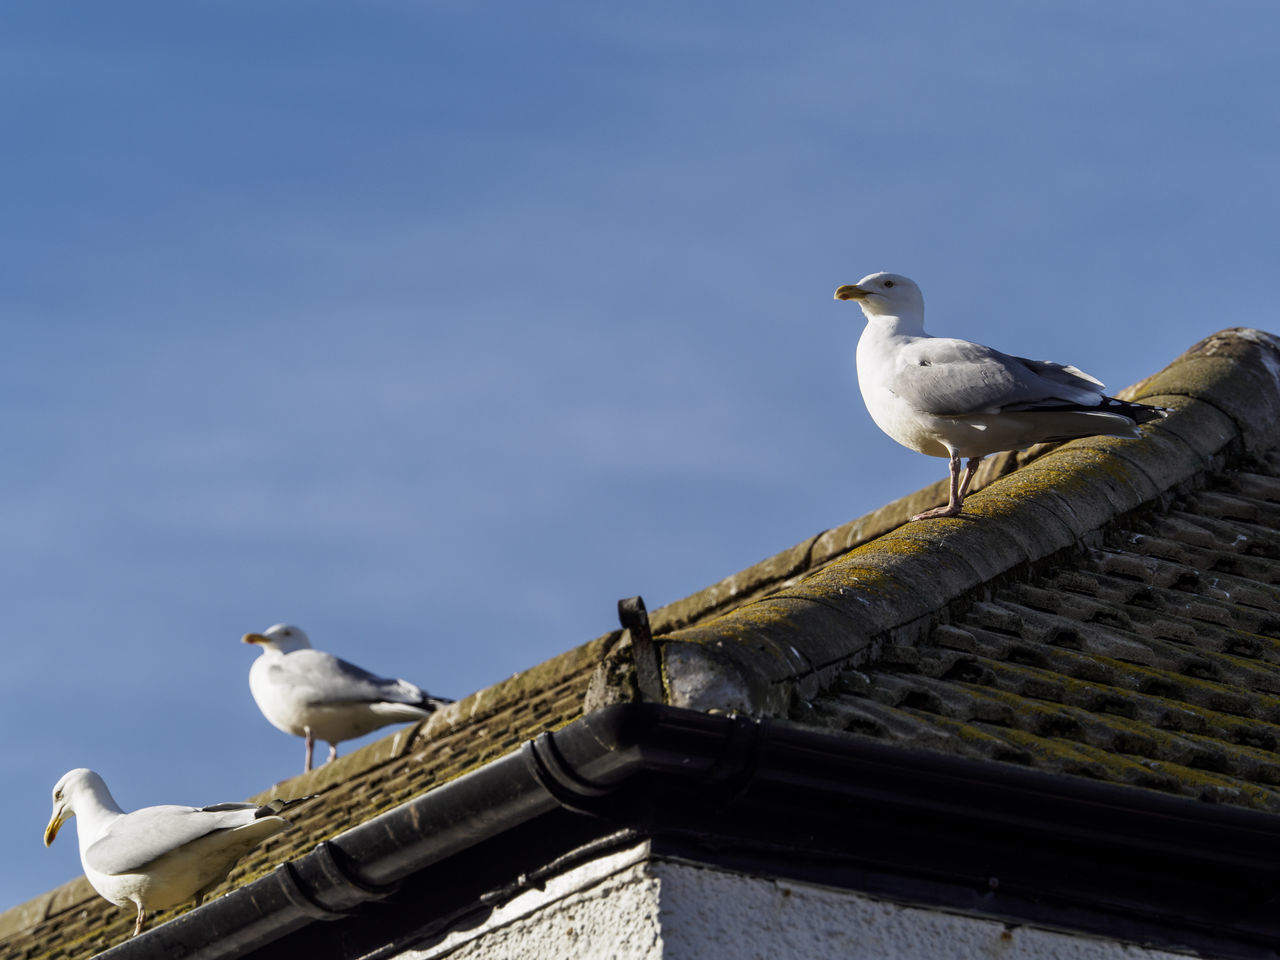 Seagulls wait on a roof in Mevagissey harbour Cornwall Animal Themes Animal Wildlife Animals In The Wild Bird Nature Perching Roof Seagull